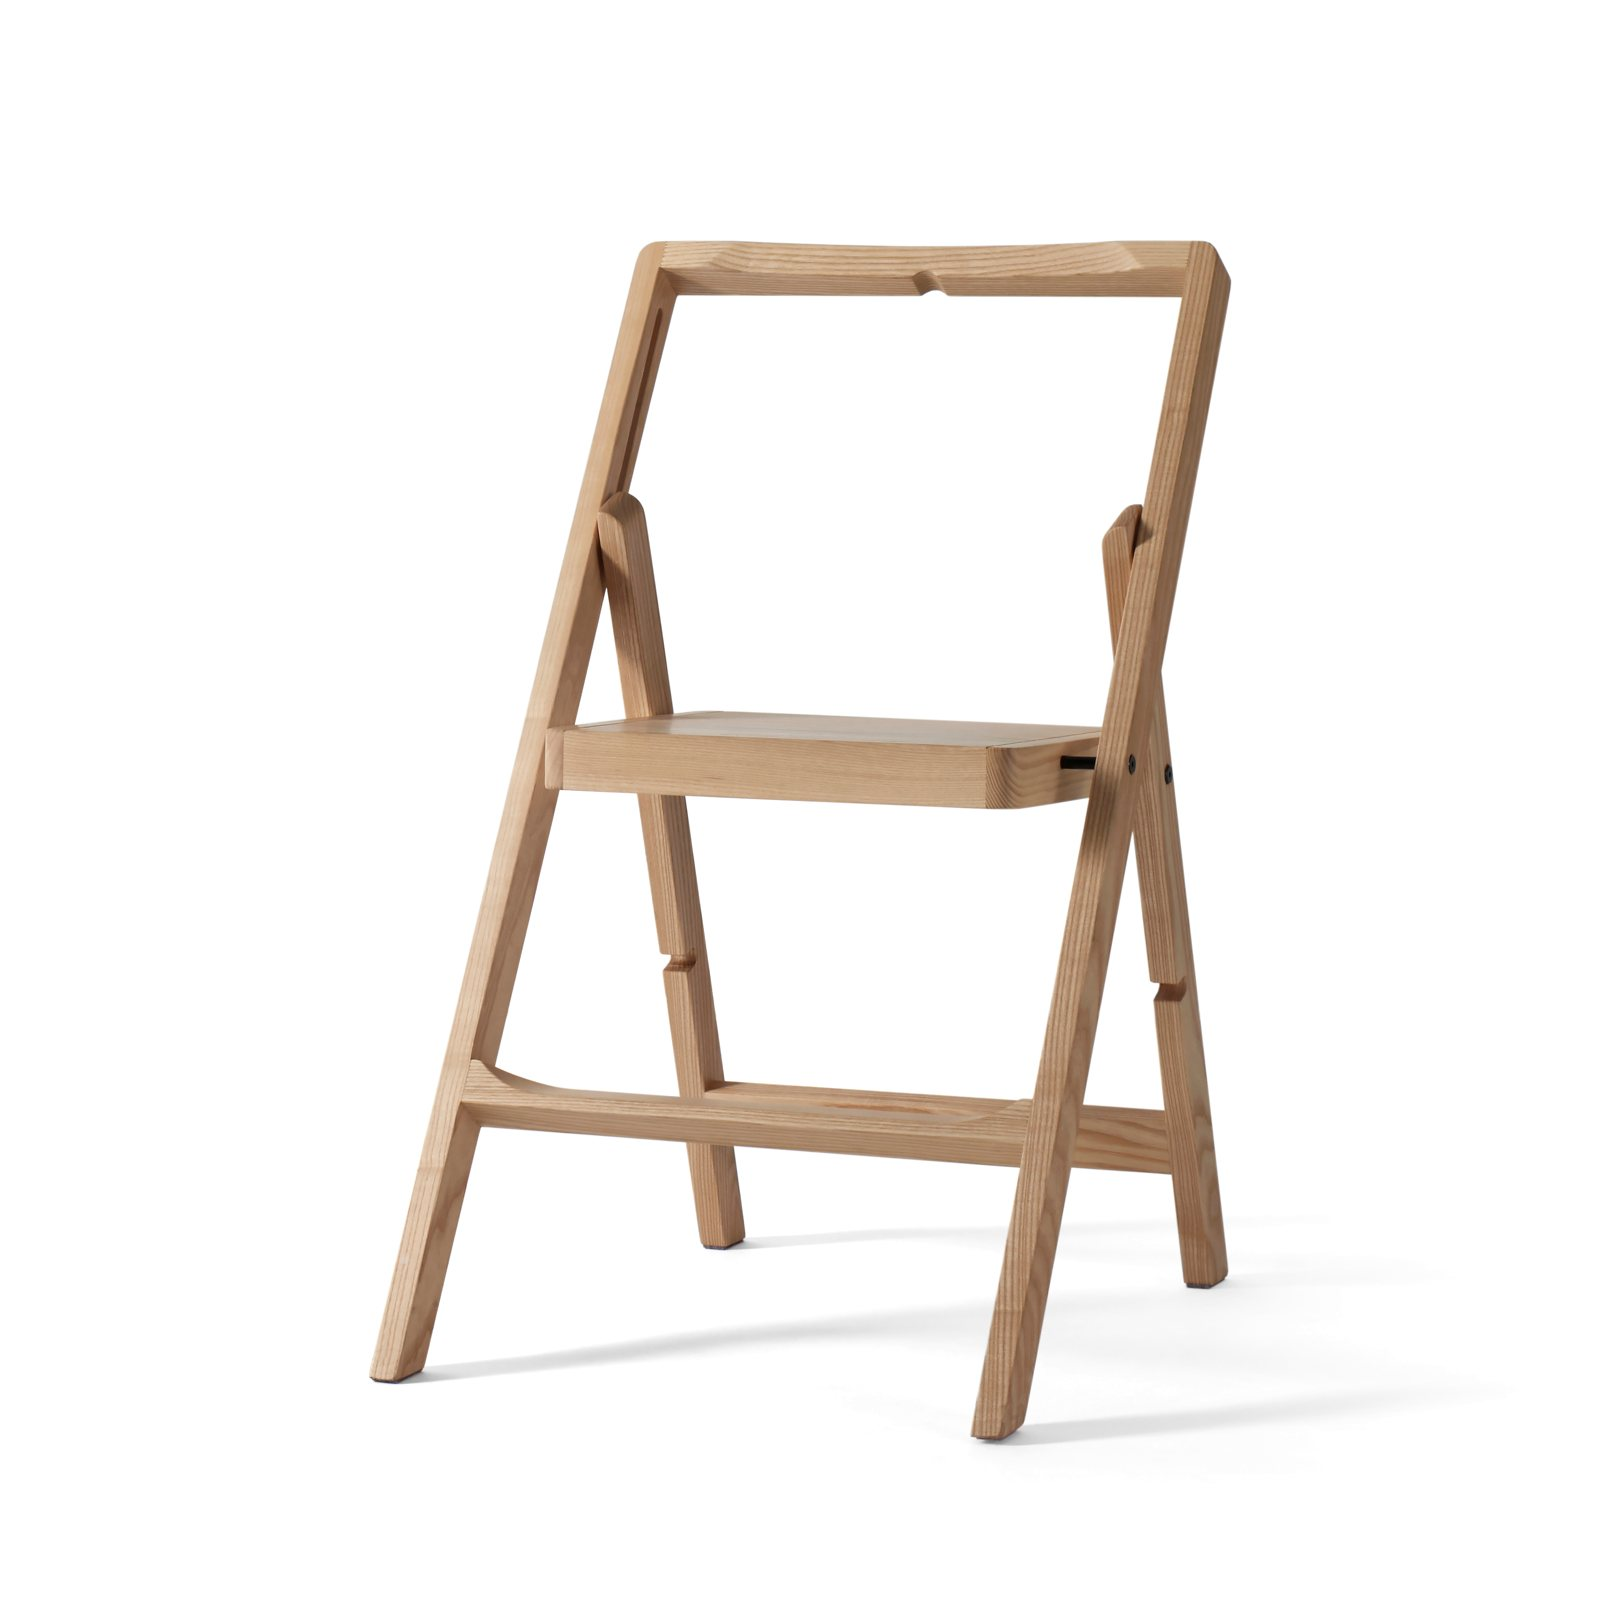 Magnificent Step Mini Step Stool By Karl Malmvall Design Ab For Design Forskolin Free Trial Chair Design Images Forskolin Free Trialorg